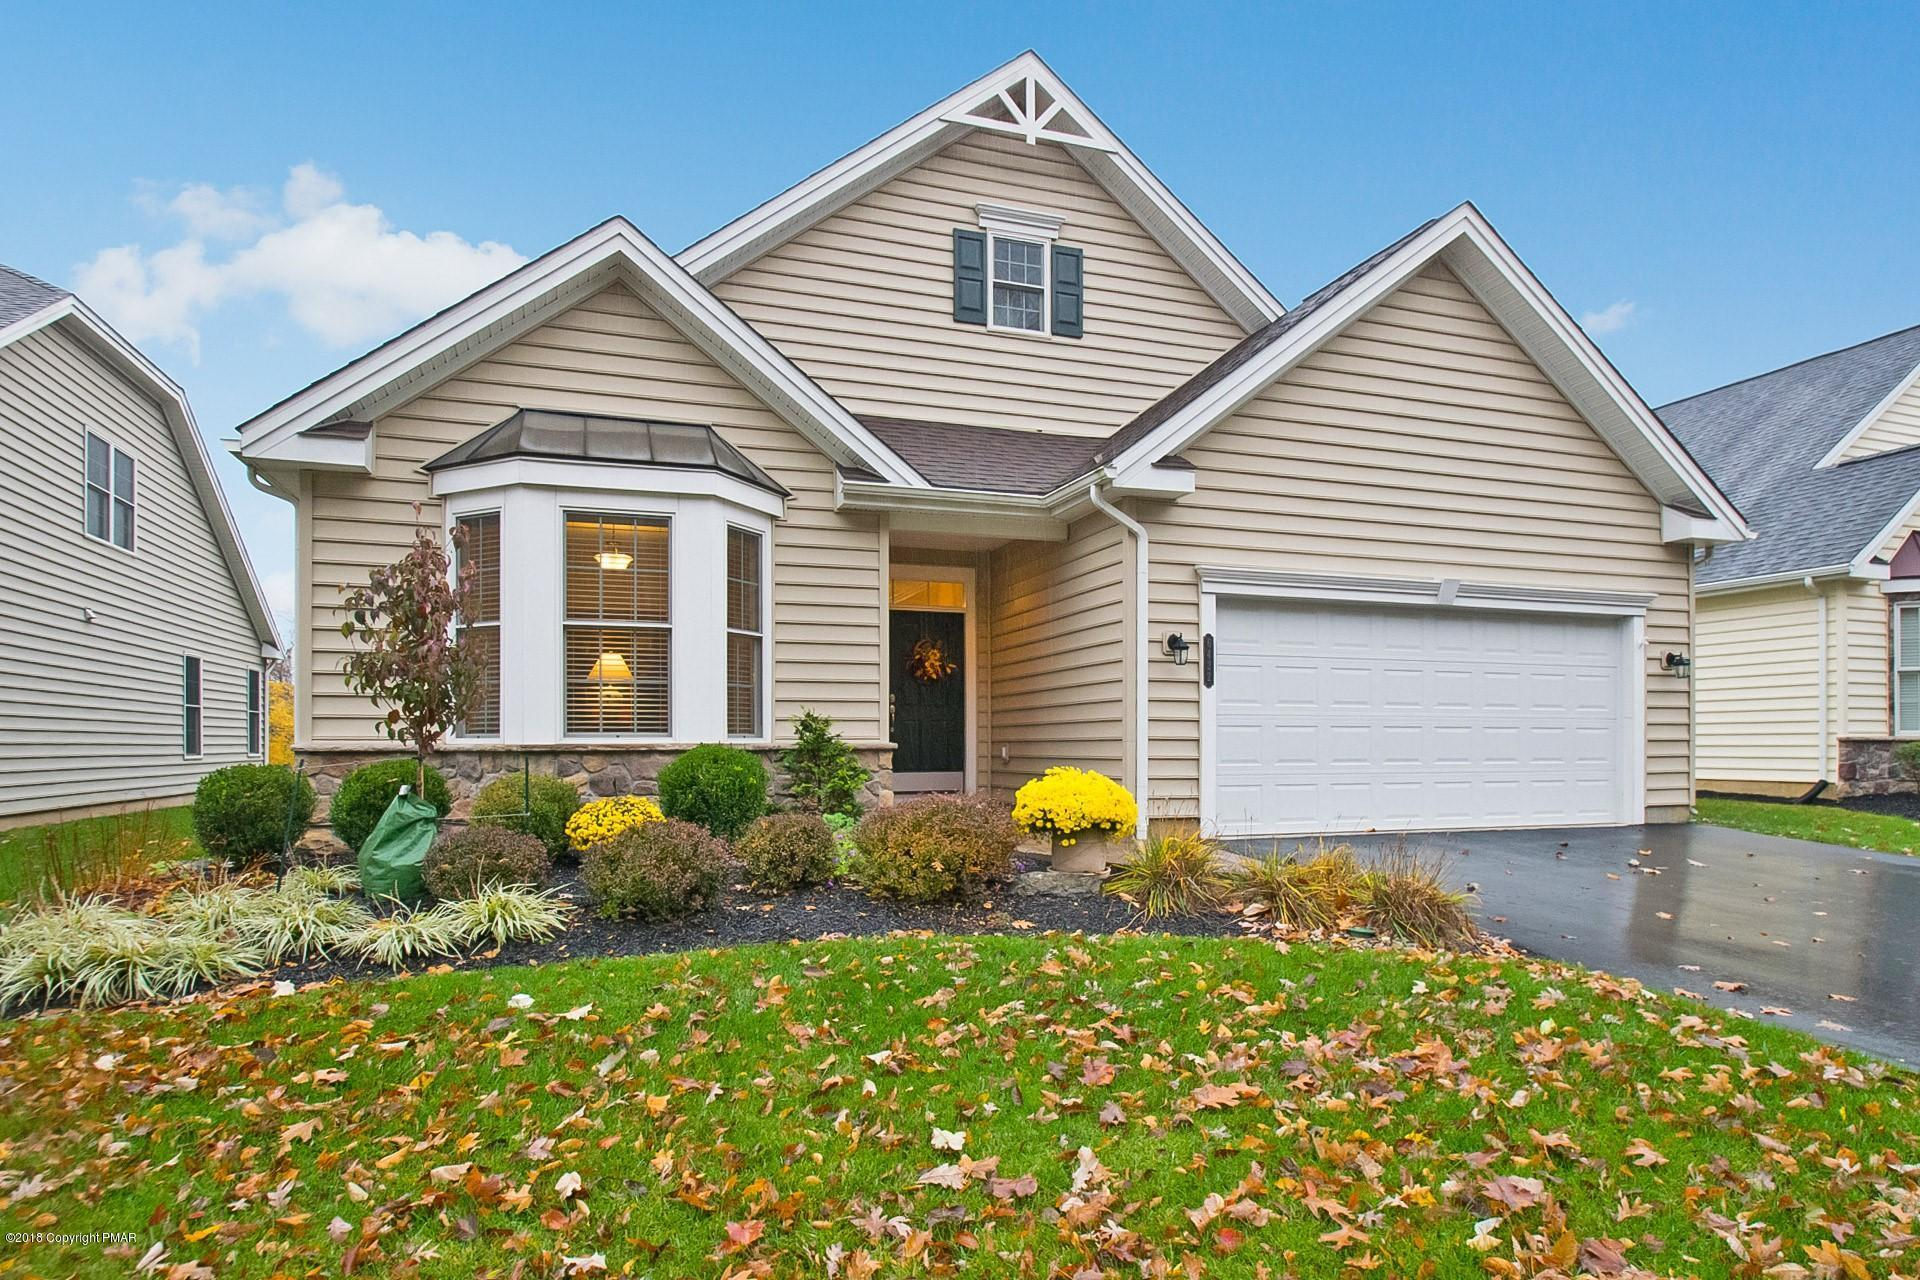 Real Estate Professionals In Lehigh Valley & Nazareth, PA